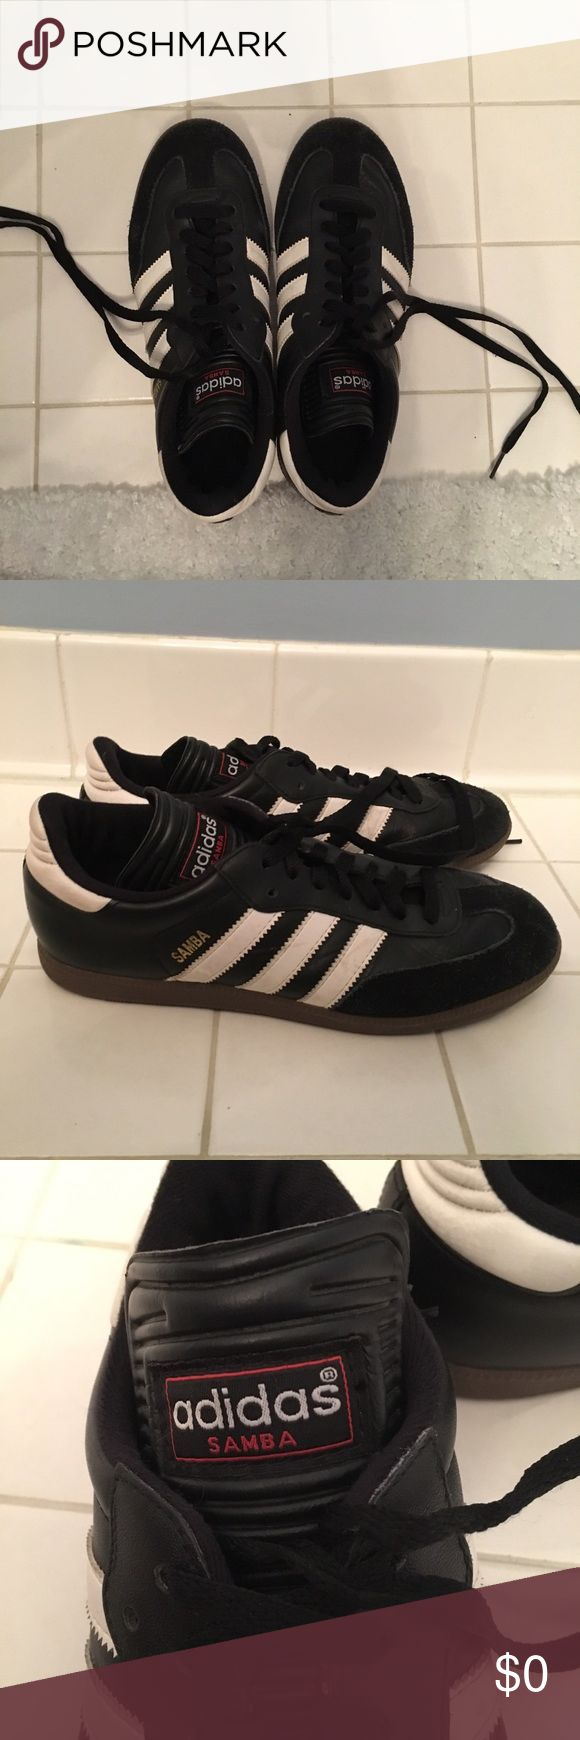 Adidas Samba Trainers SIZE 7 Mens, SIZE 9 Womens •has few scuffs • mint condition• Adidas Shoes Sneakers